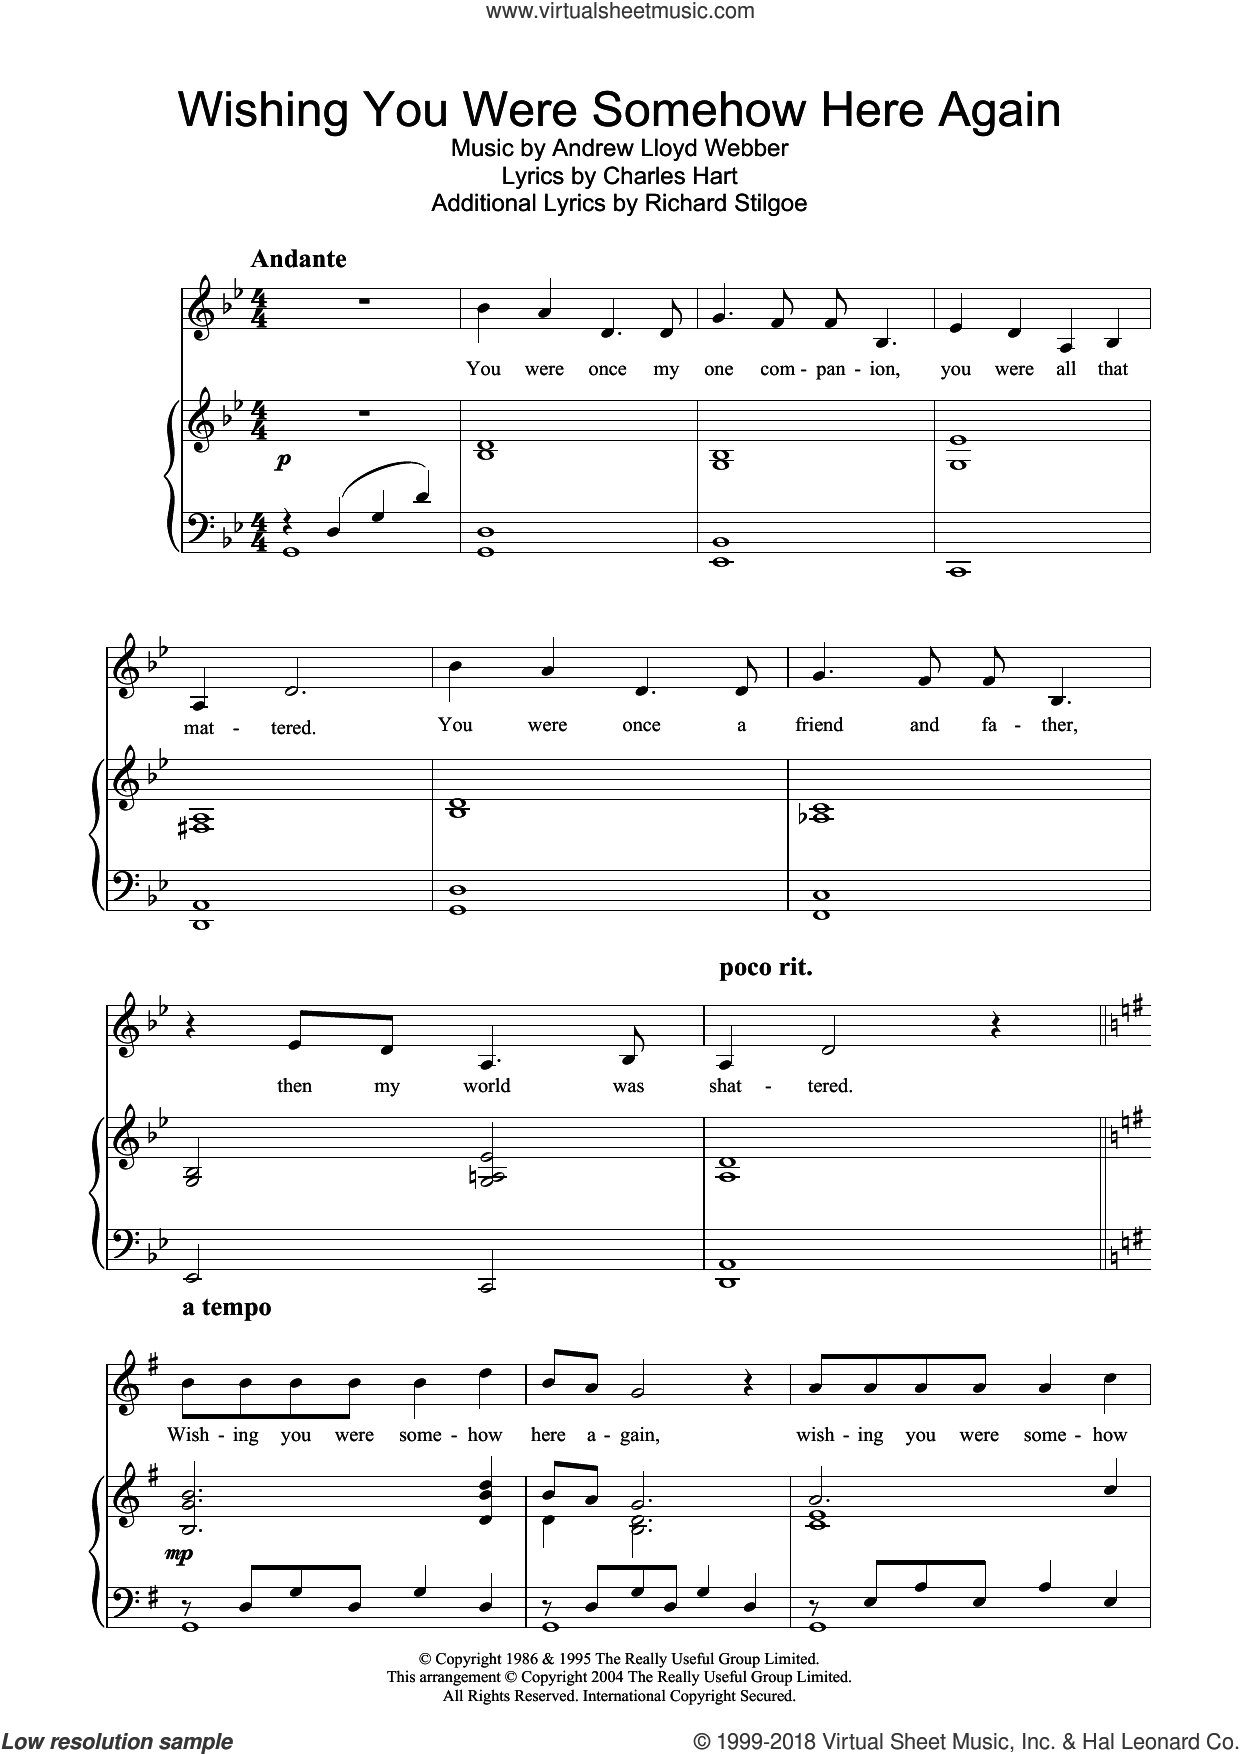 Wishing You Were Somehow Here Again (from The Phantom Of The Opera) sheet music for voice, piano or guitar by Andrew Lloyd Webber, Hayley Westenra, The Phantom Of The Opera (Musical), Charles Hart and Richard Stilgoe, classical score, intermediate skill level